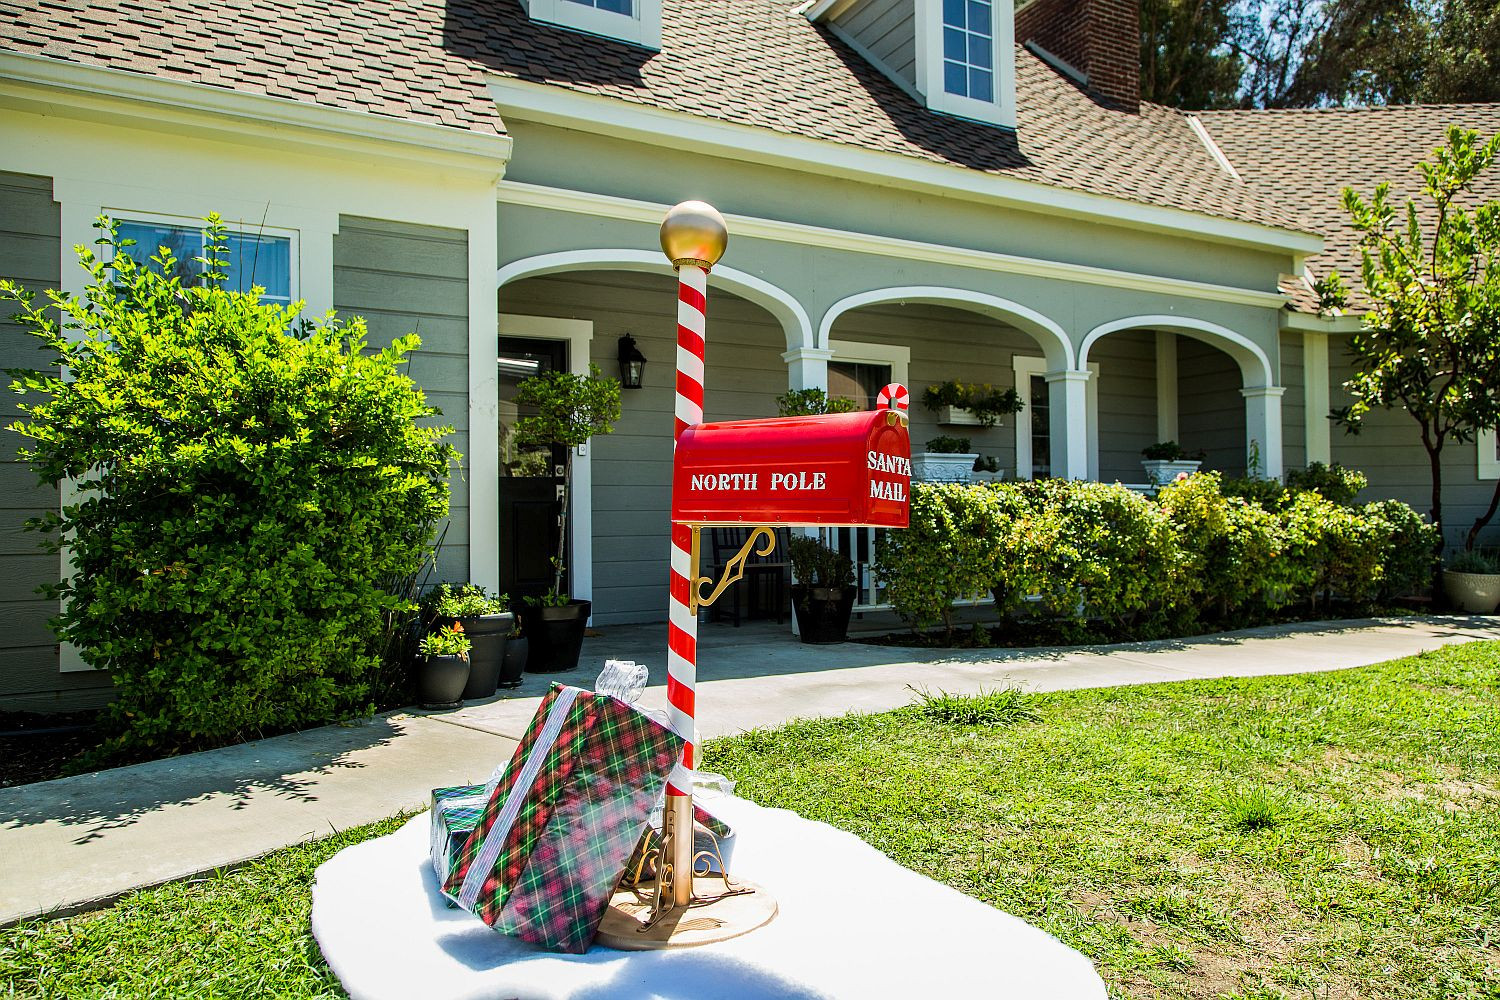 DIY Mailbox Ideas  10 Unique DIY Mailbox Ideas from the Festive to the Chic